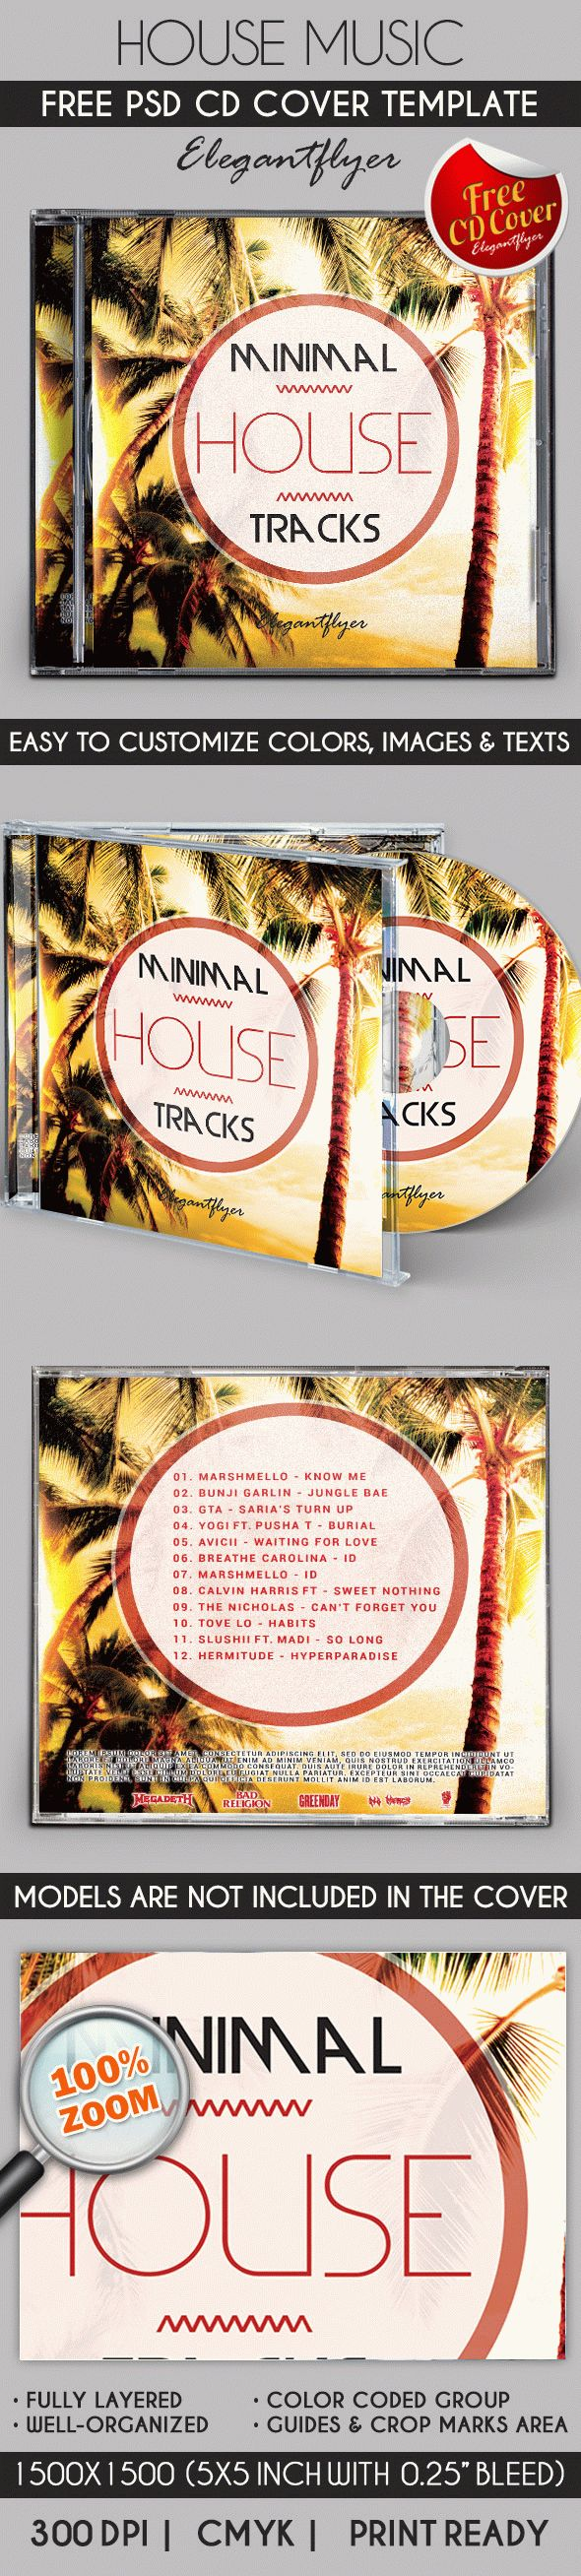 Free Template CD Cover for House Music Party